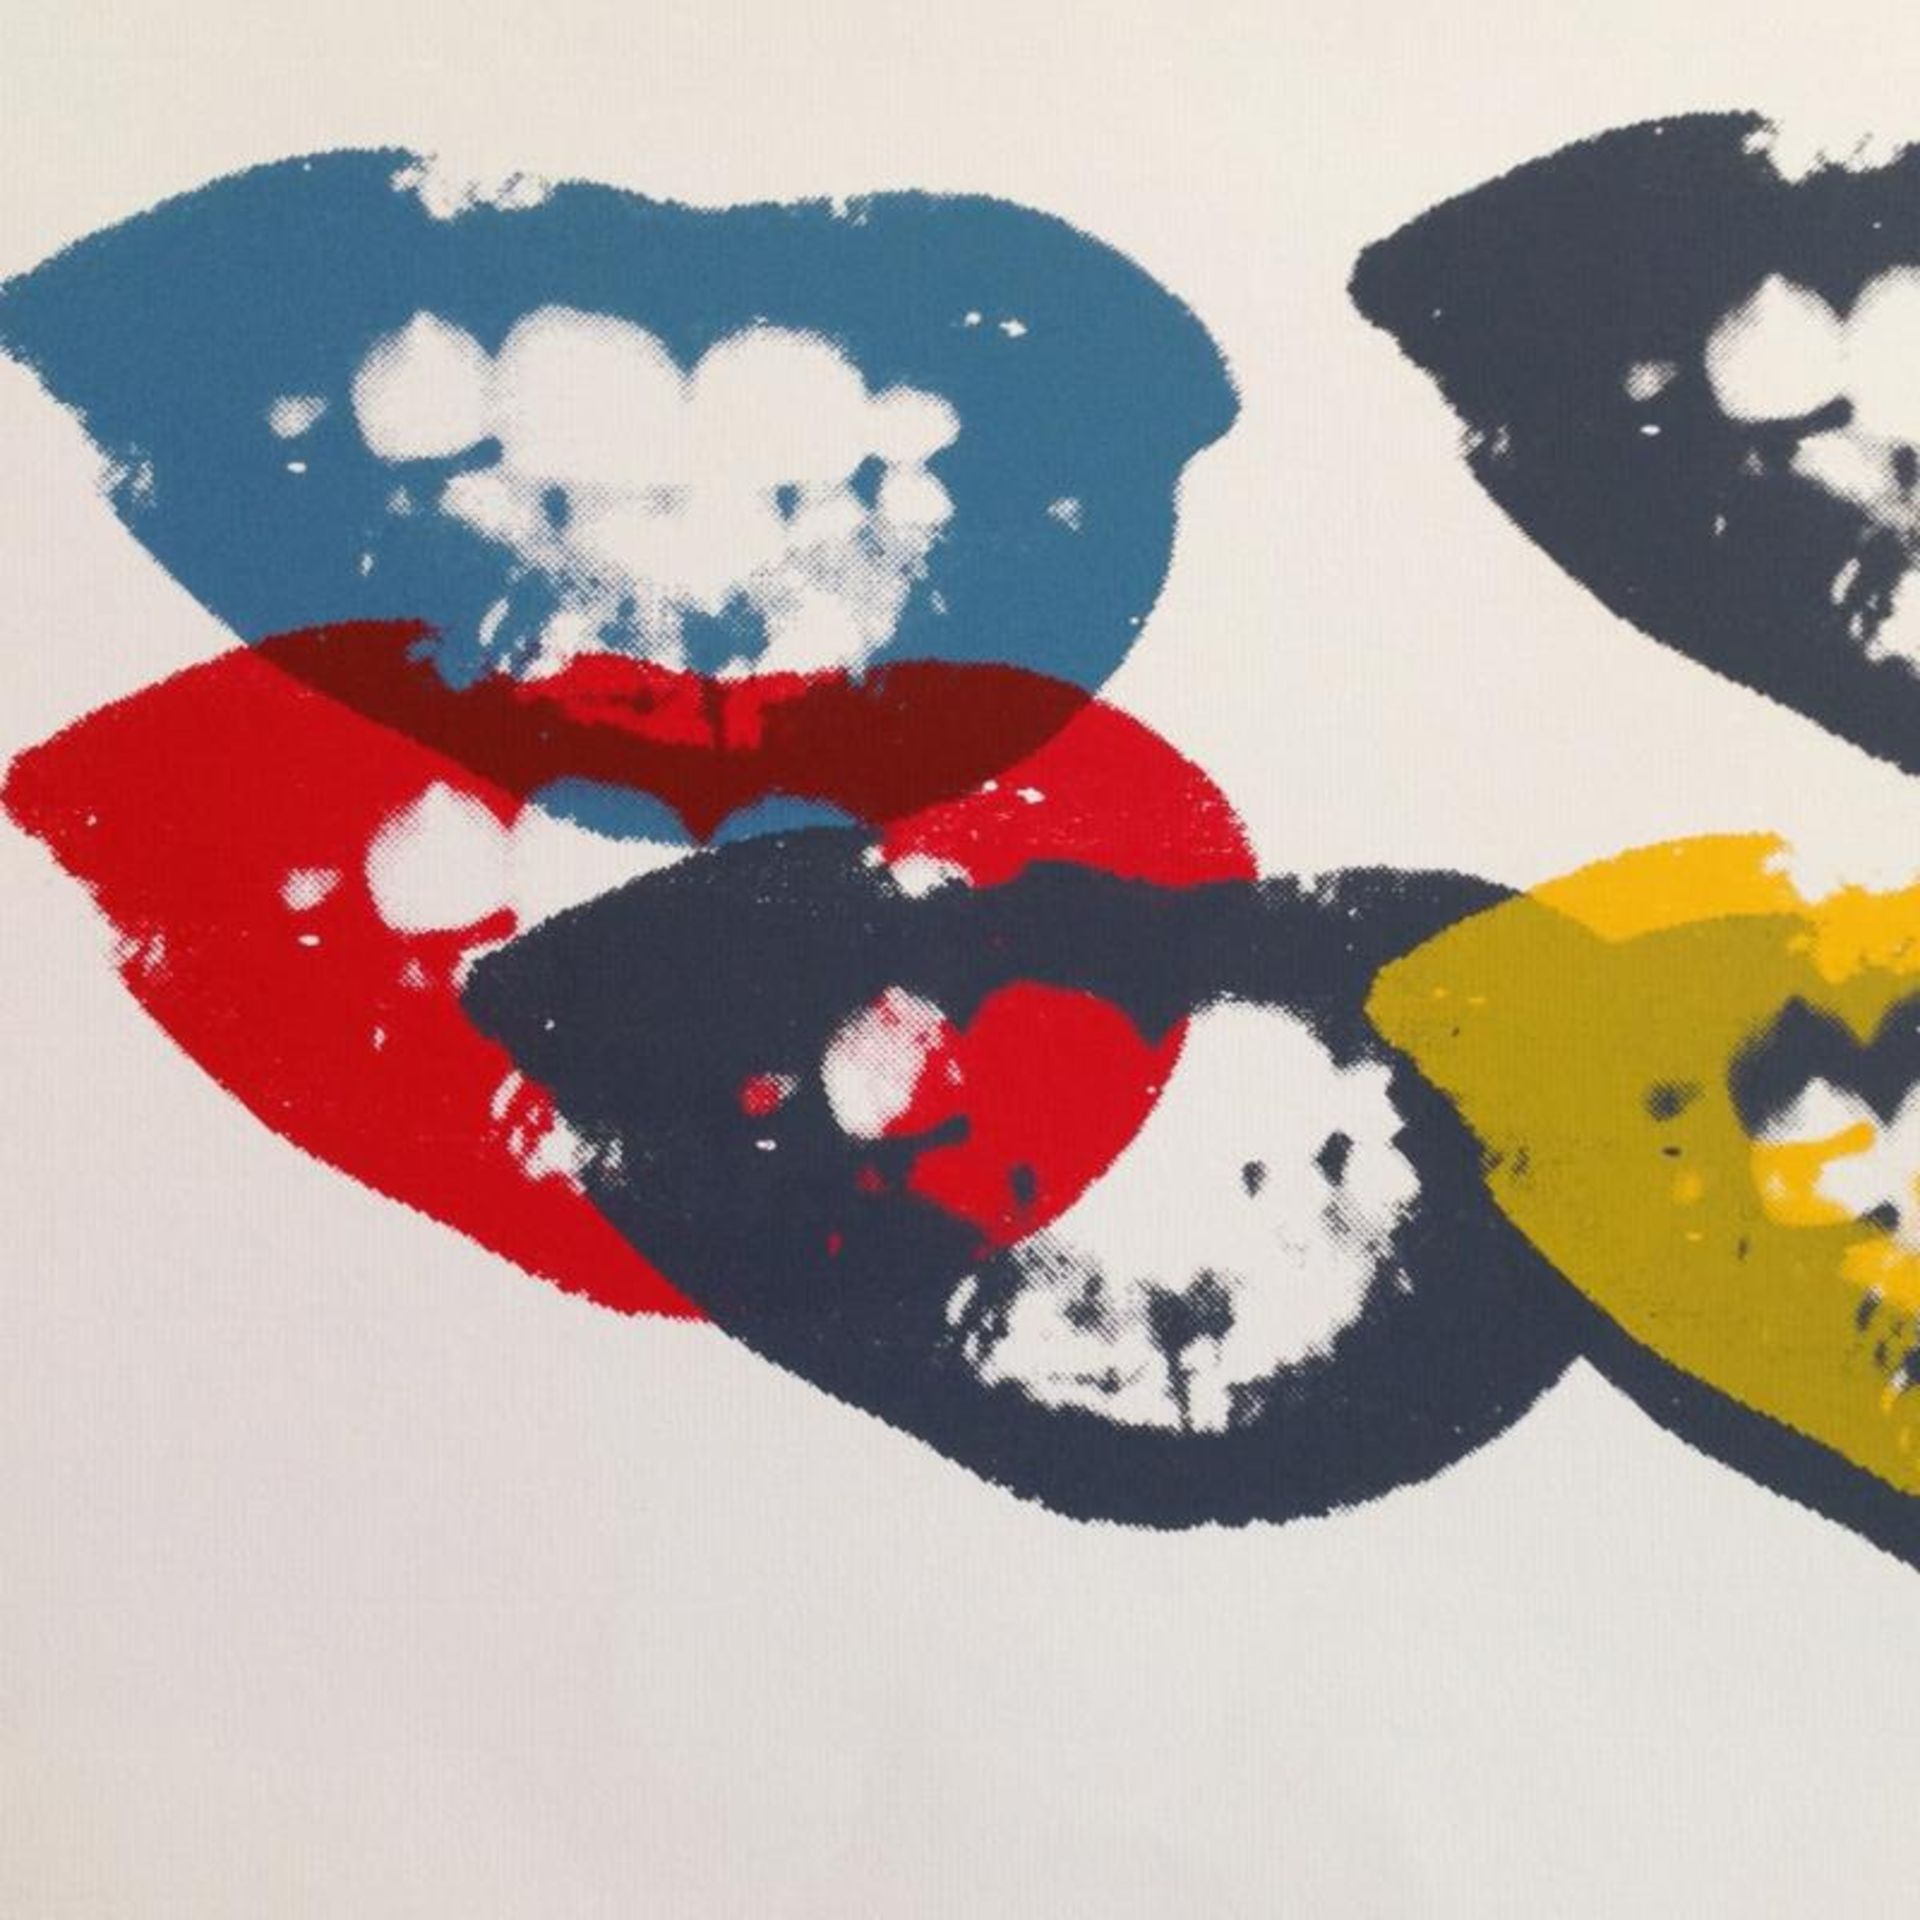 """Andy Warhol """"I Love Your Kiss Forever Forever"""" Limited Edition Silk Screen Print - Image 2 of 2"""